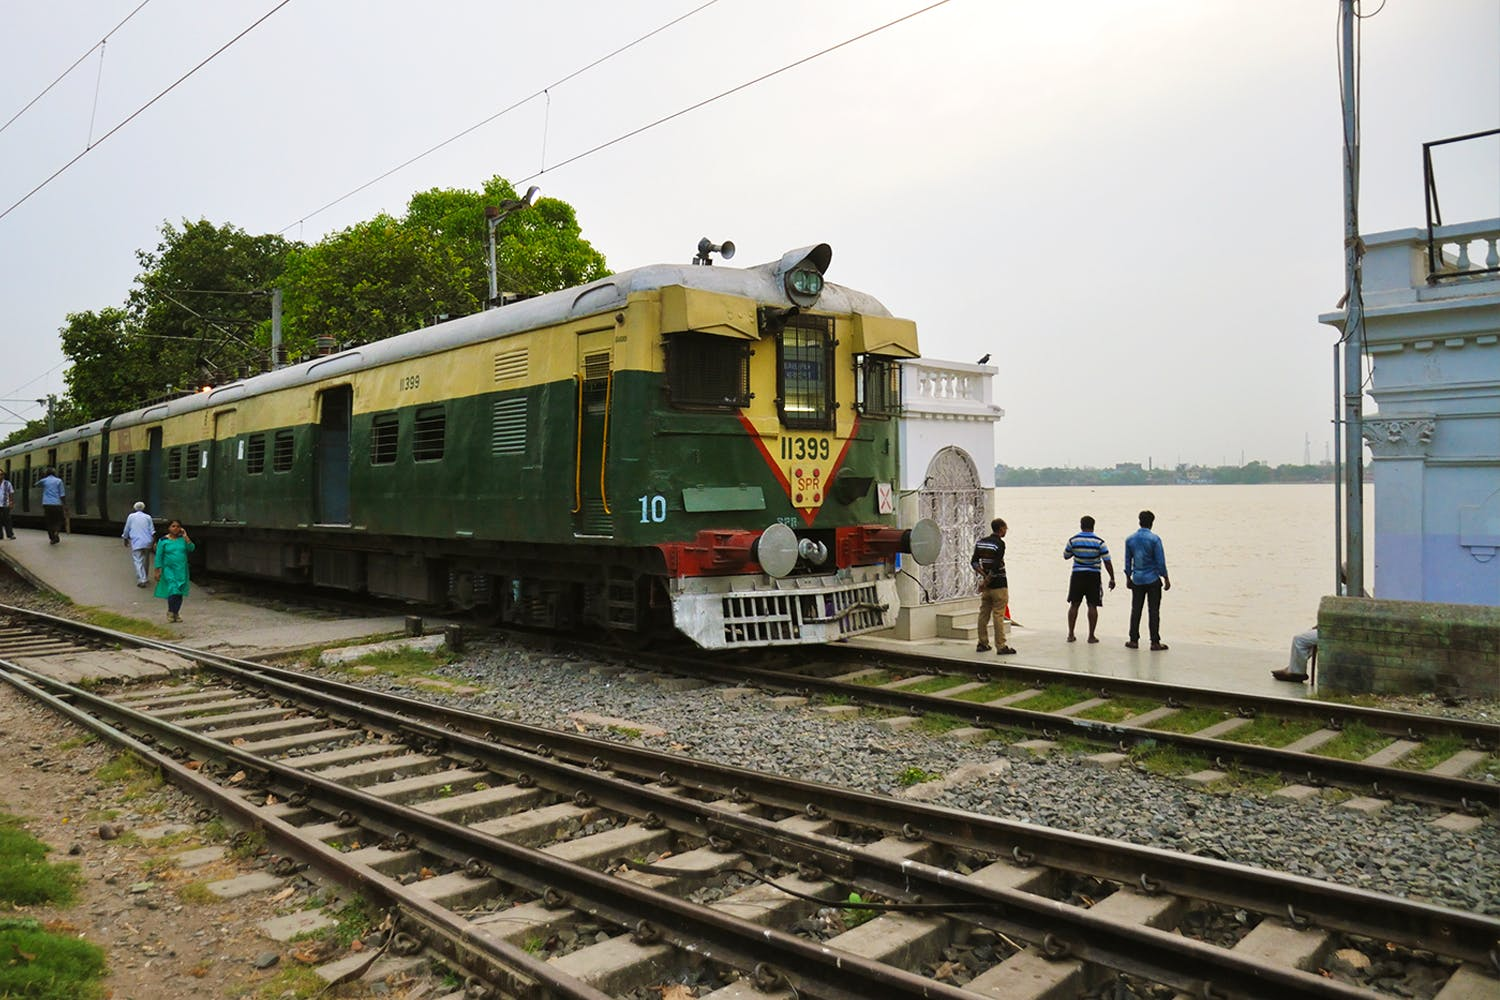 Have You Been On Kolkata's Circular Railway Yet?